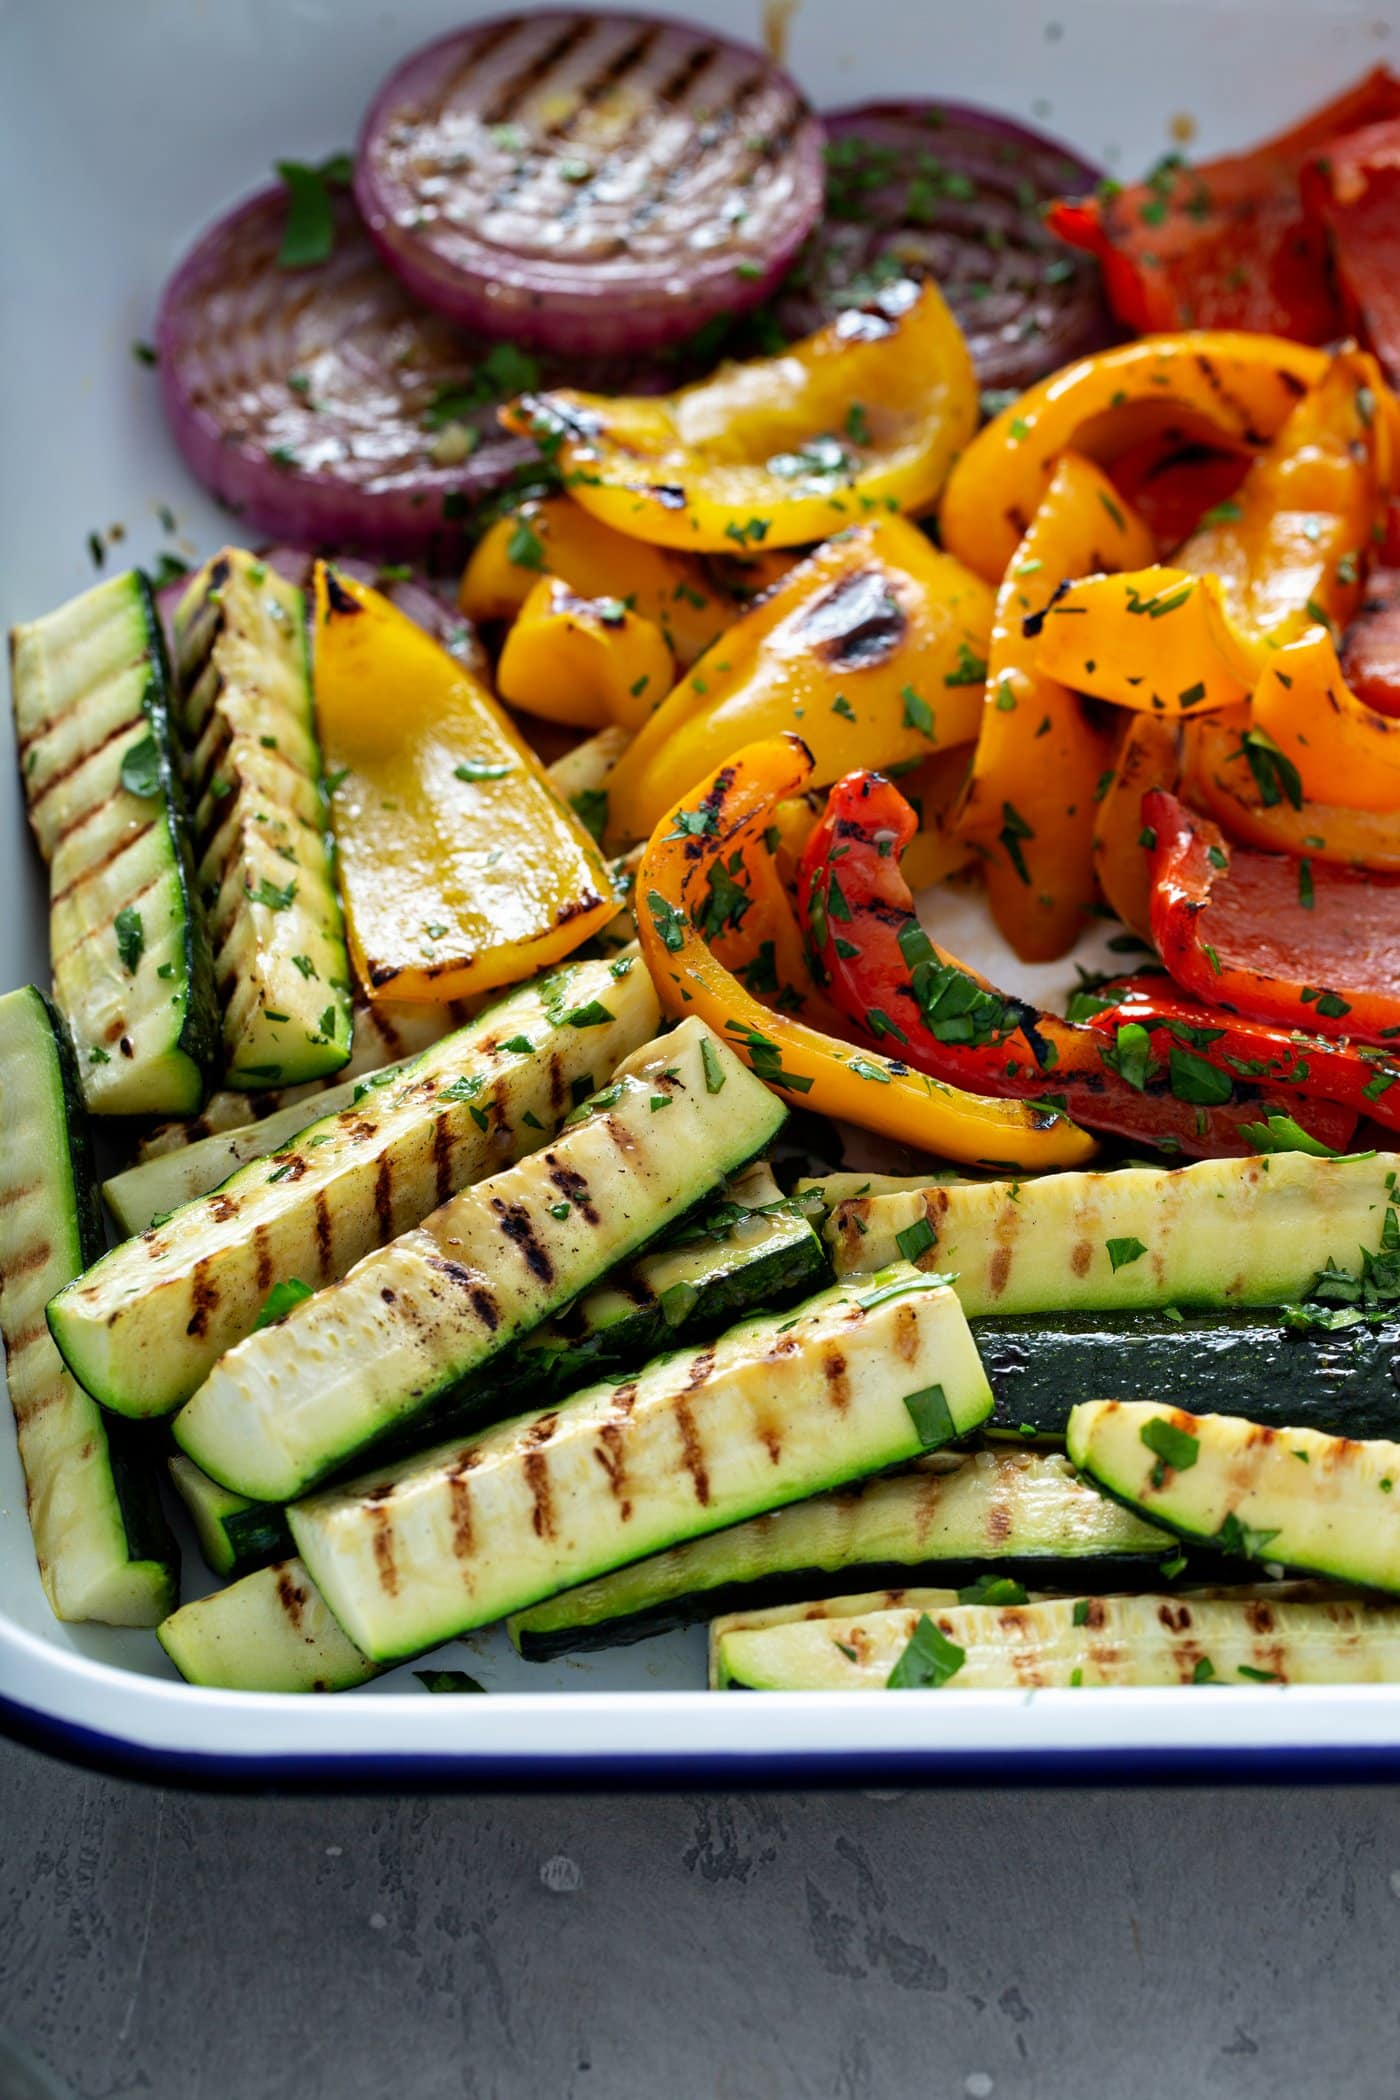 A plate full of grilled veggies. The zucchini wedges, red onion slices and red and yellow bell peppers have grill marks on them and they are sprinkled with a few parsley leaves.